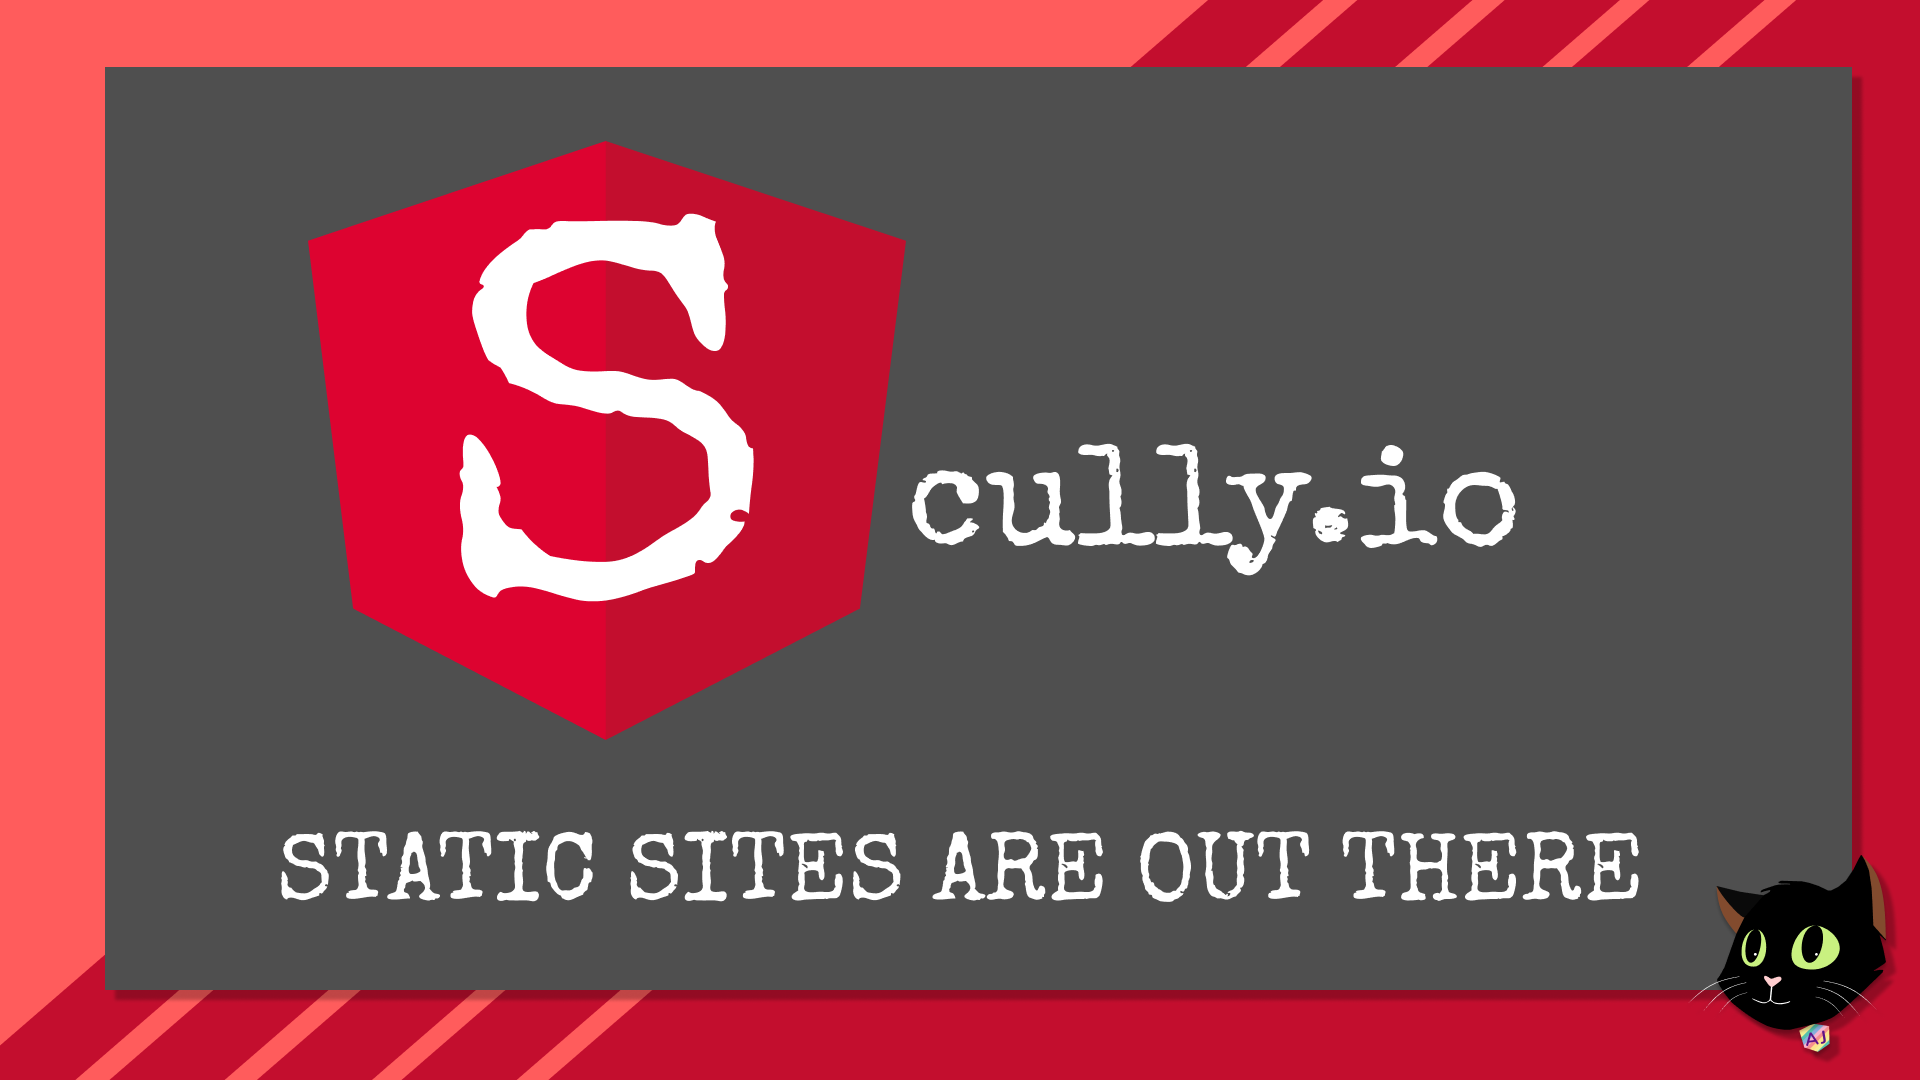 Scully.io - Static Sites Are Out There